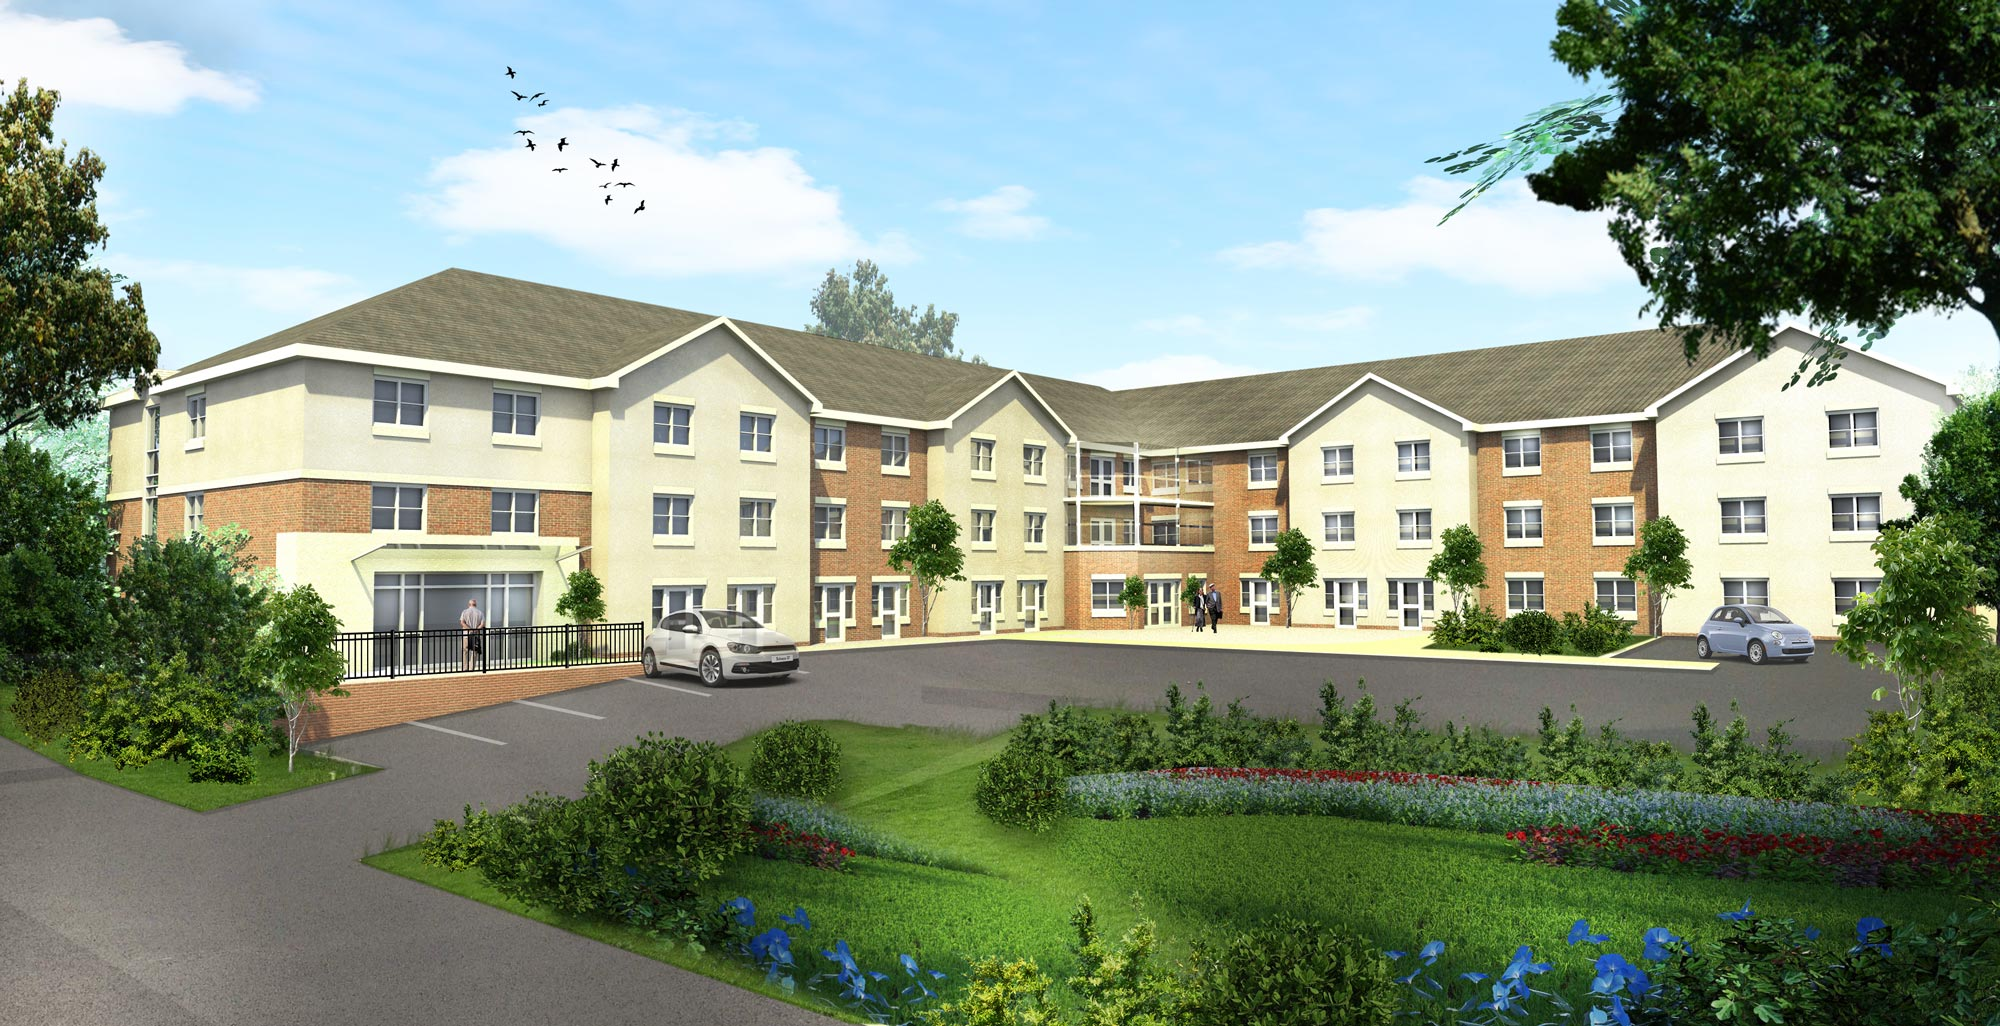 Chetwynd House Adept Care Homes Adept Care Homes